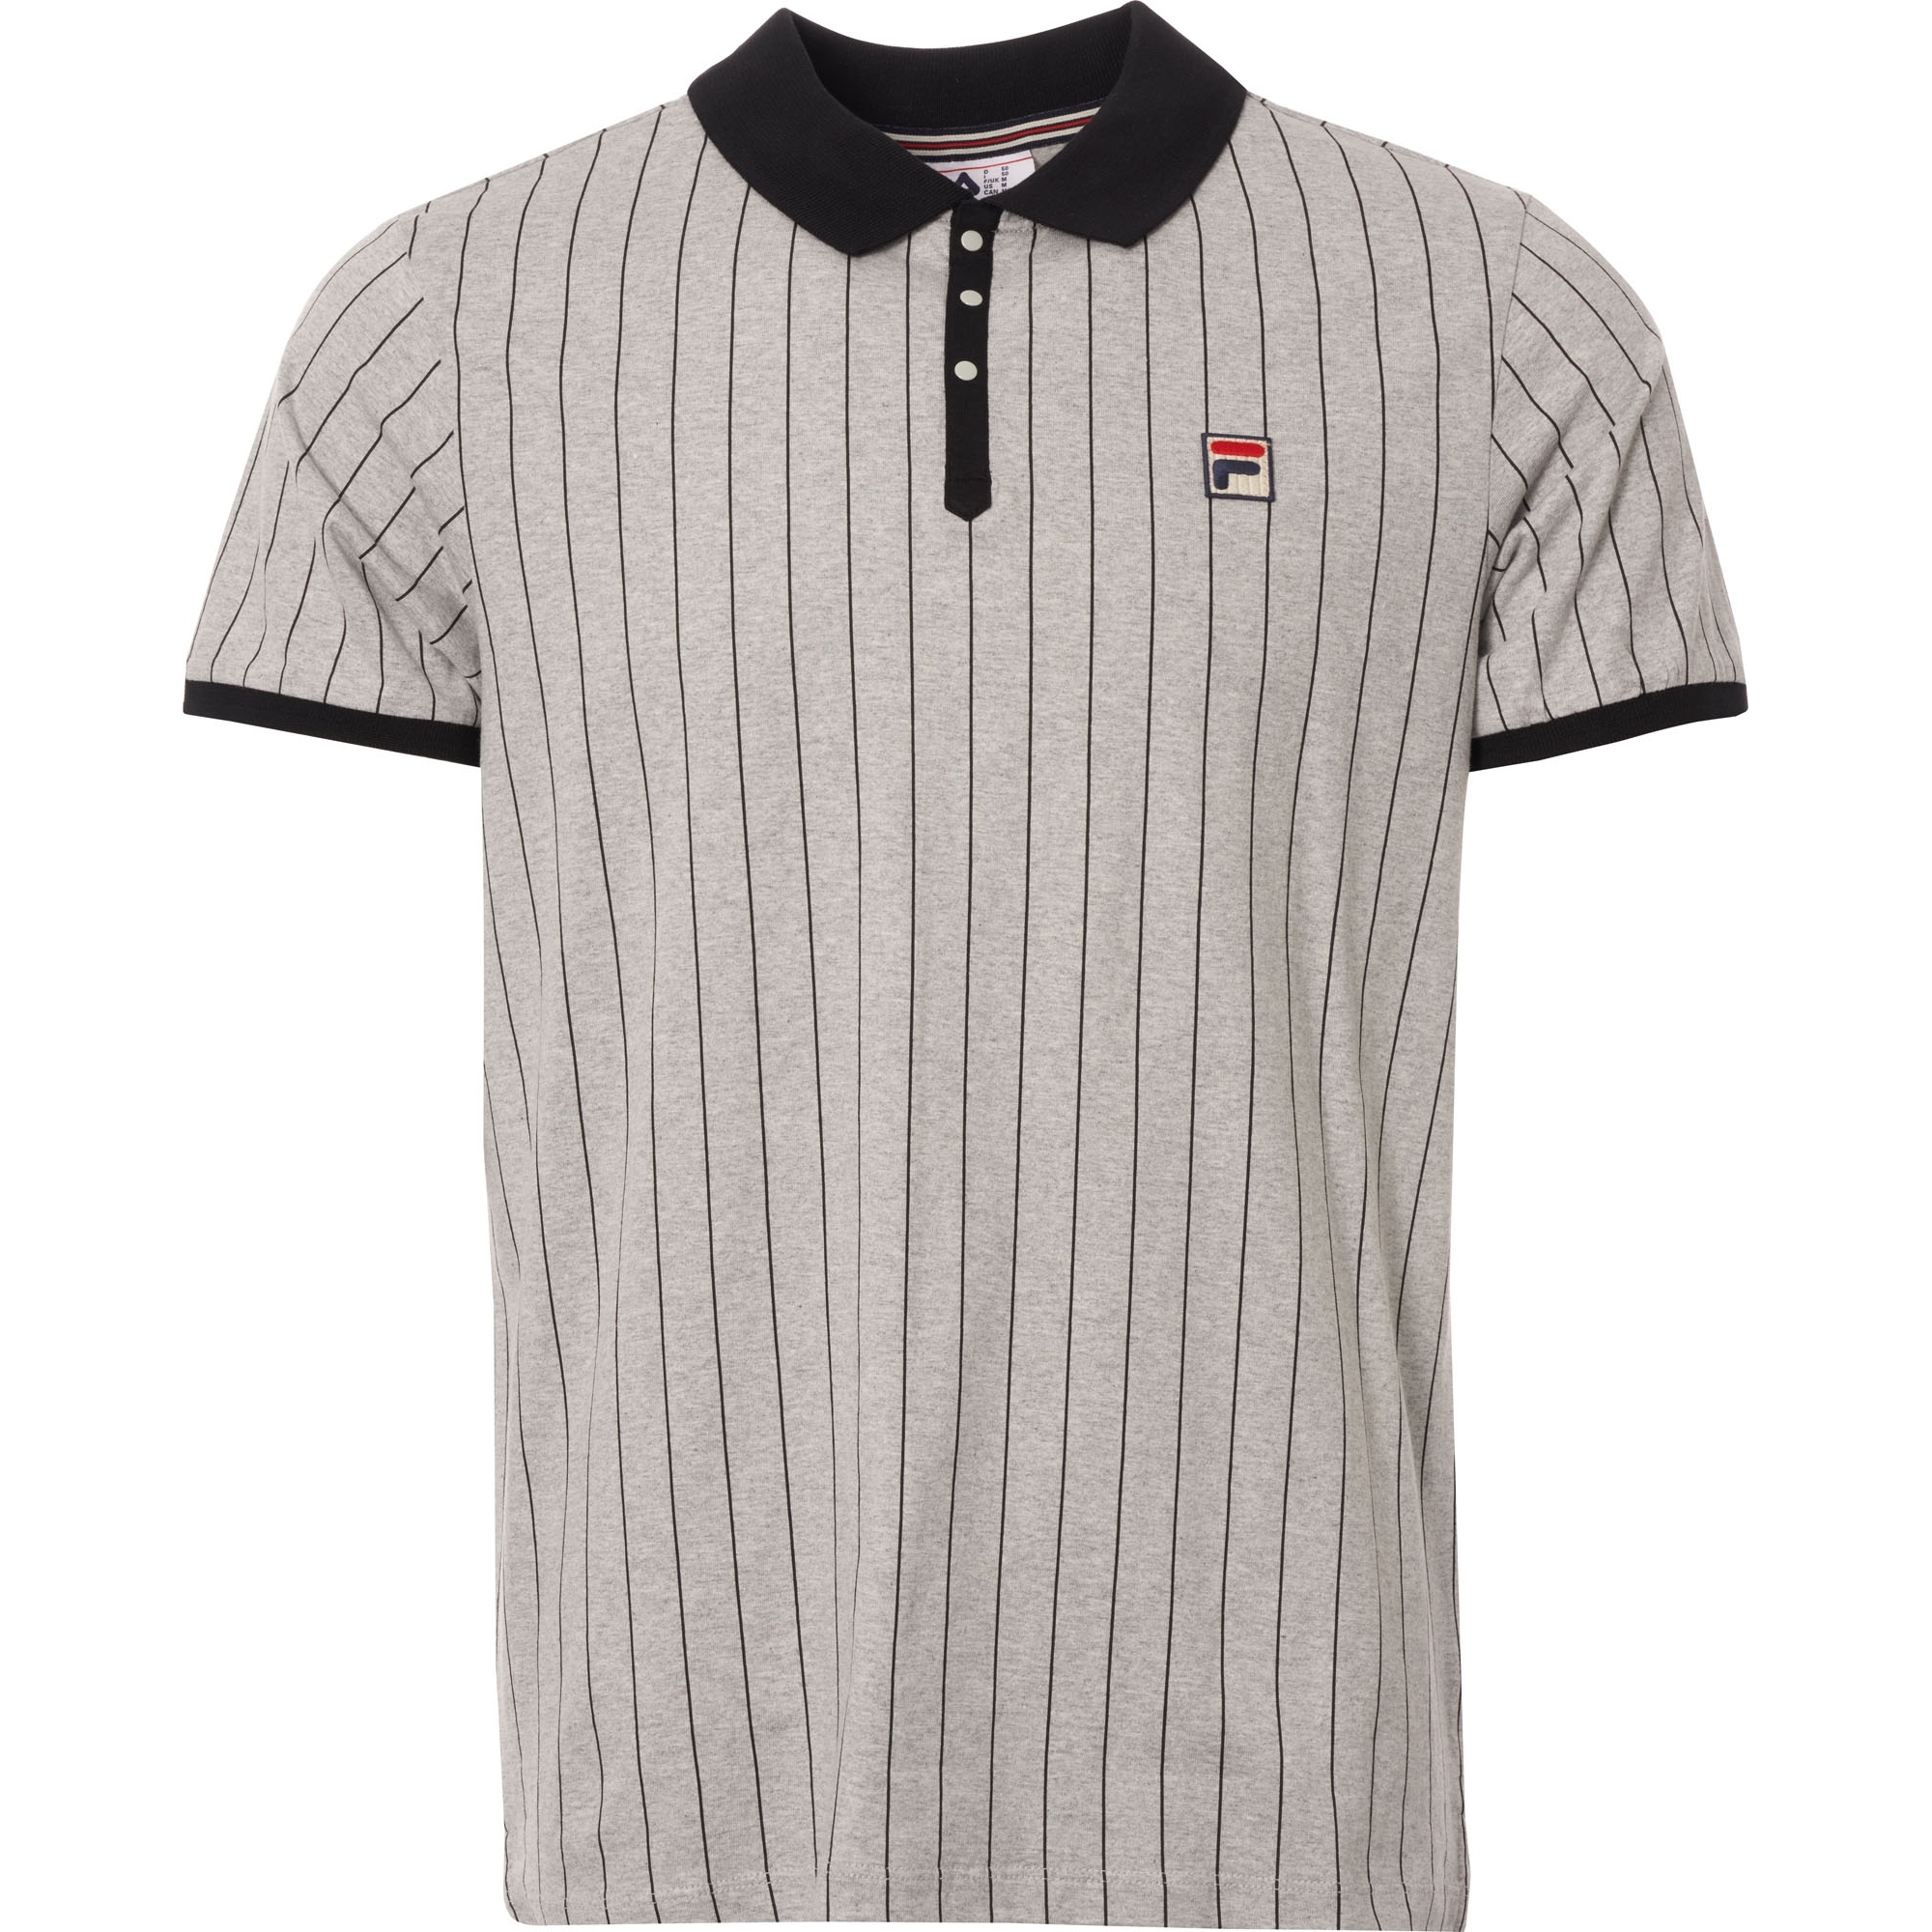 BB1 Polo Shirt - Grey & Black